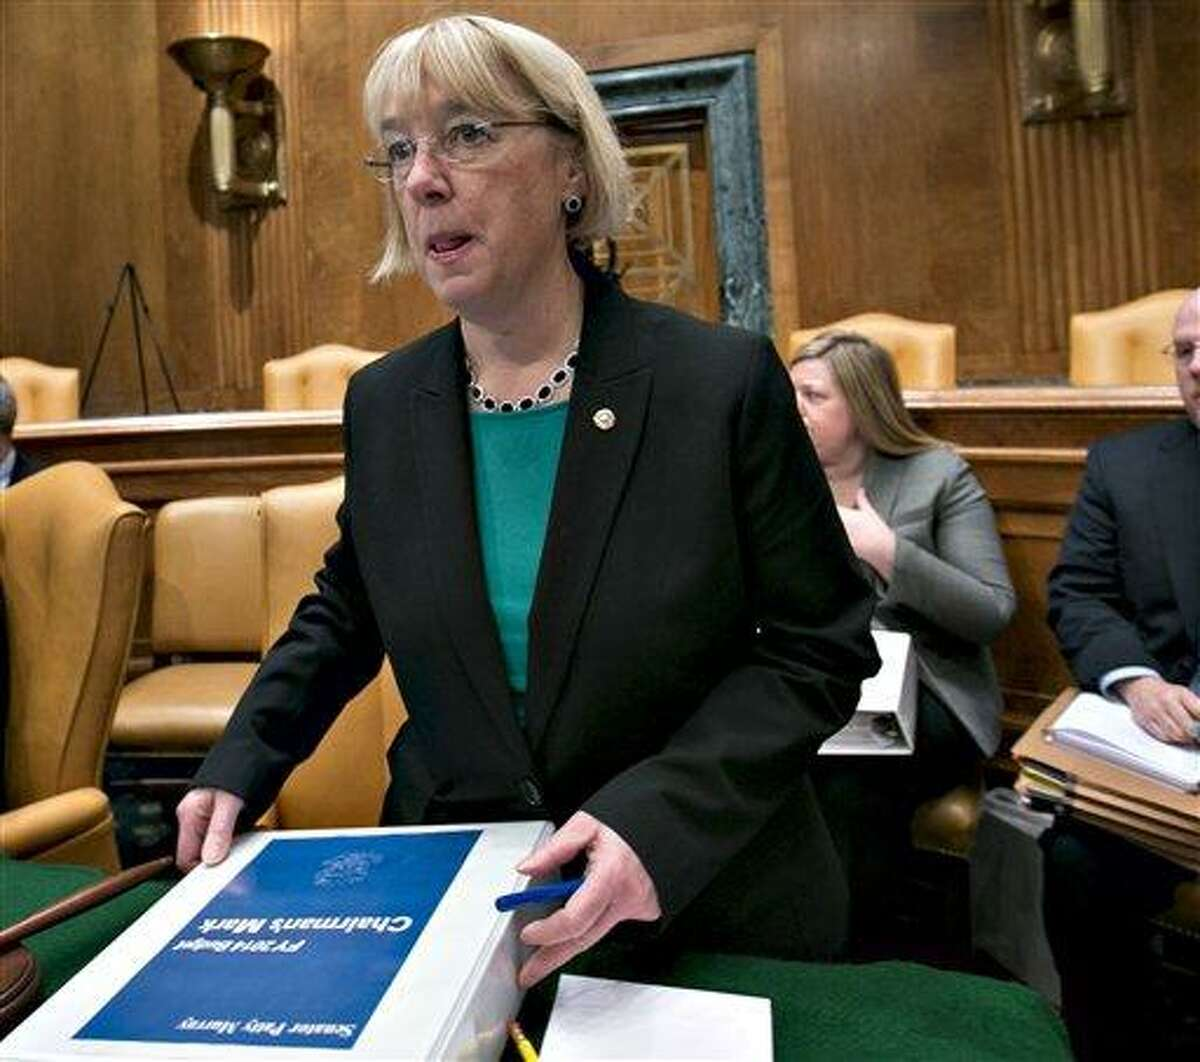 FILE - In this March 14, 2013 file photo, Senate Budget Committee Chair Sen. Patty Murray, D-Wash. is seen on Capitol Hill in Washington. Democrats controlling the Senate moved on Friday toward approving their first budget in four years, promising another, almost $1 trillion round of tax increases on top of more than $600 billion in higher taxes on the wealthy enacted in January. (AP Photo/J. Scott Applewhite, File)